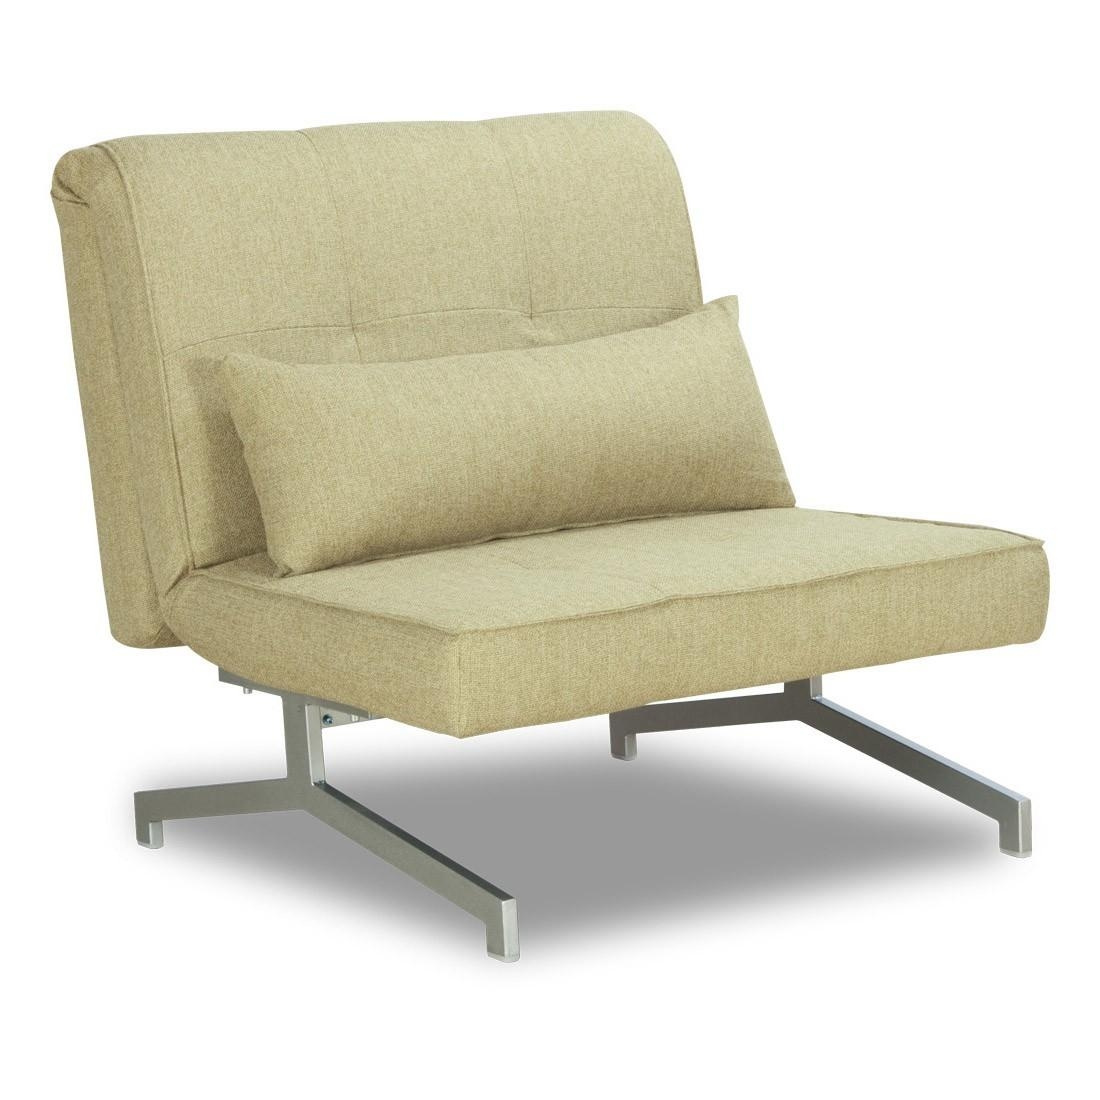 Sofas Center : Single Seat Sofa Chair Book Ofanie For Futon Intended For Single Futon Sofa Beds (View 18 of 20)